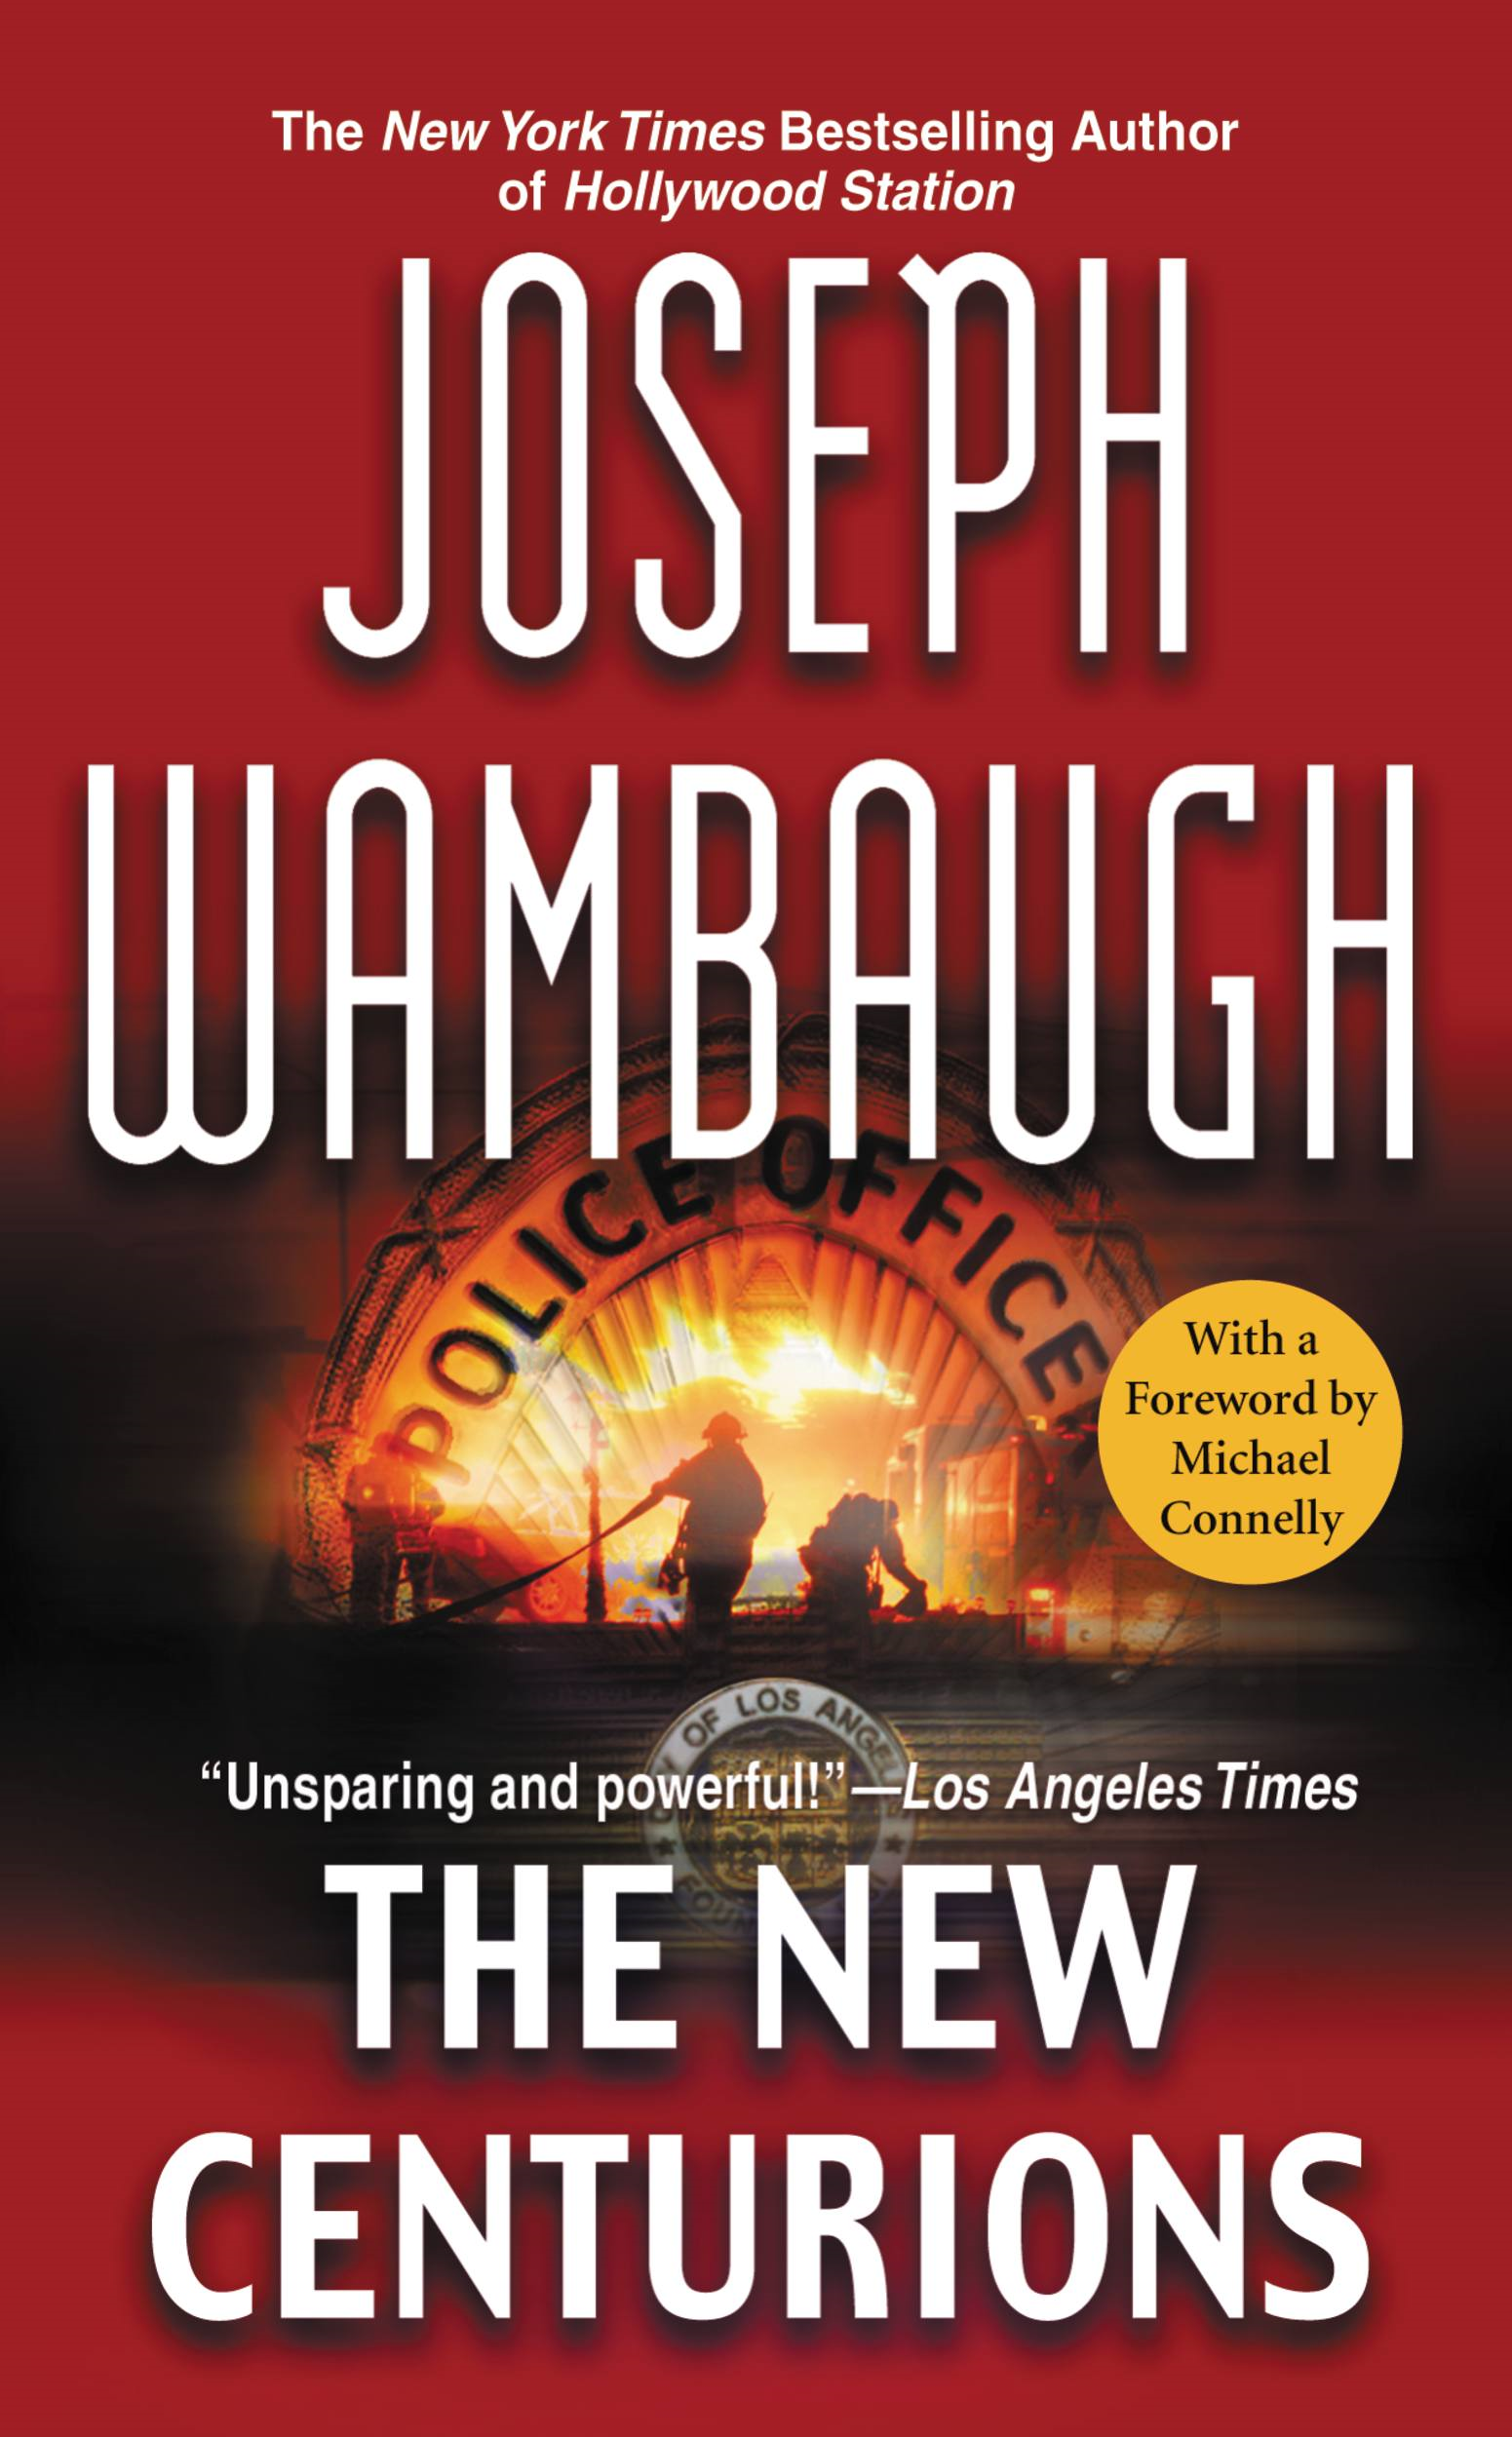 The New Centurions By: Joseph Wambaugh